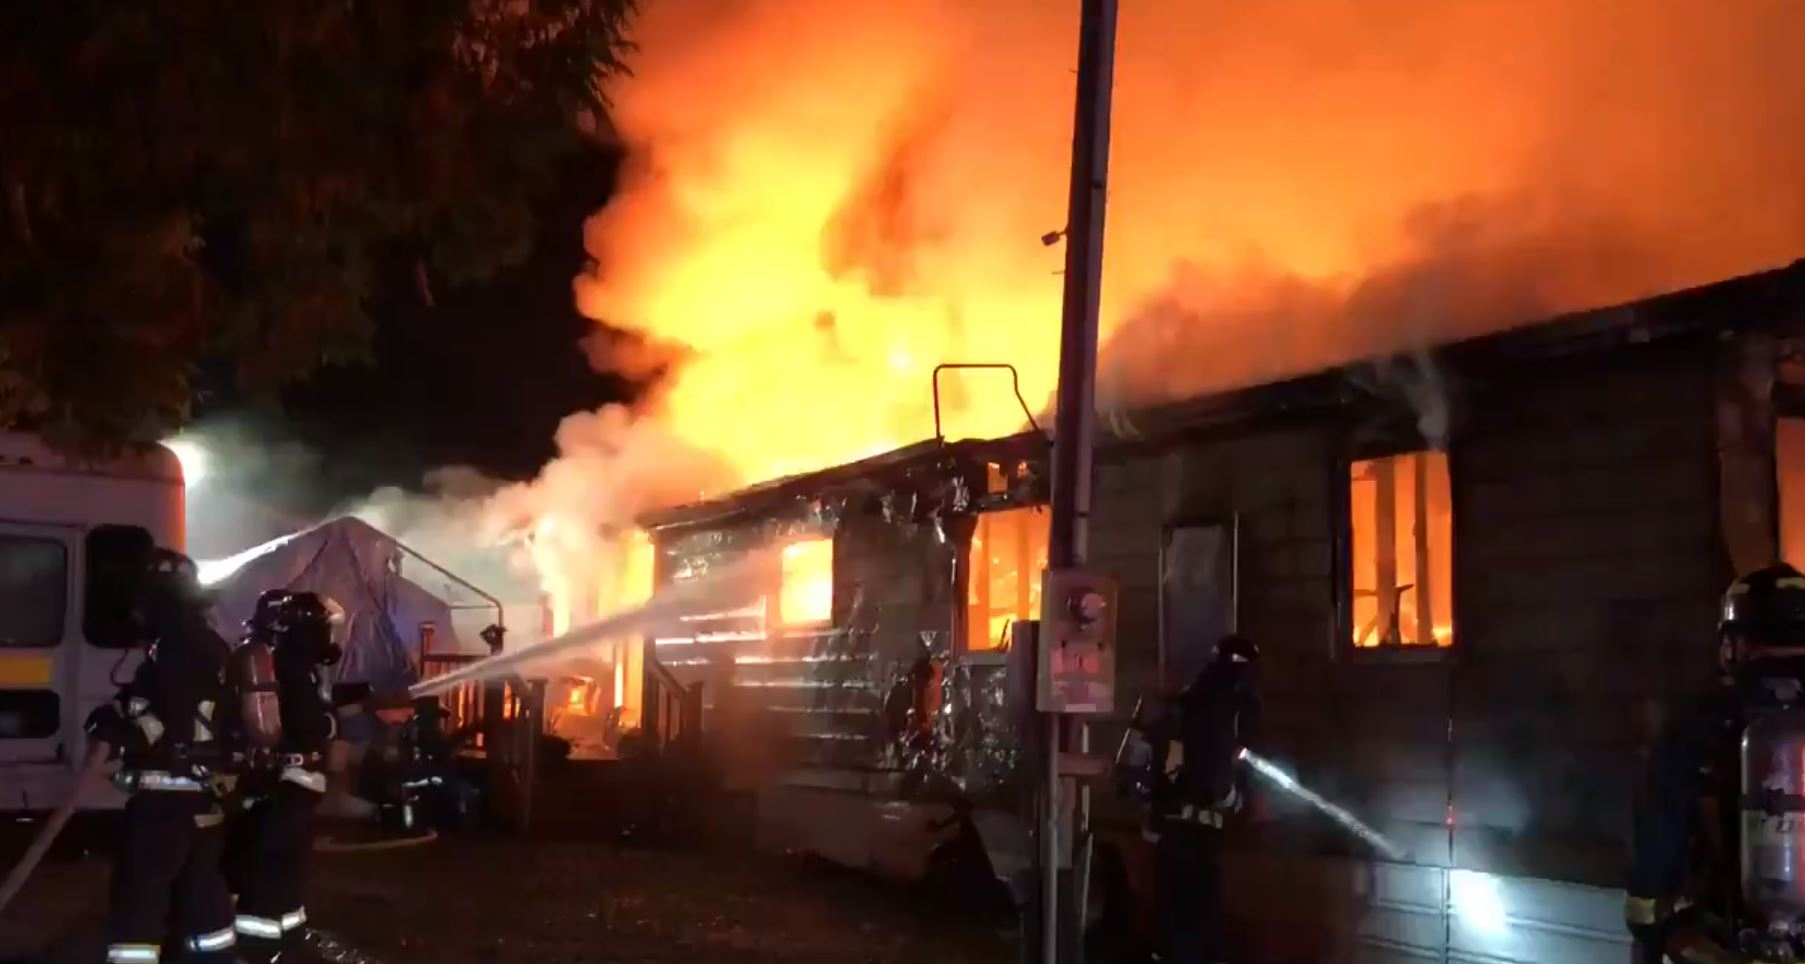 Firefighters work to douse a blaze at a Bonney Lake mobile home (East Pierce Fire & Rescue photo)